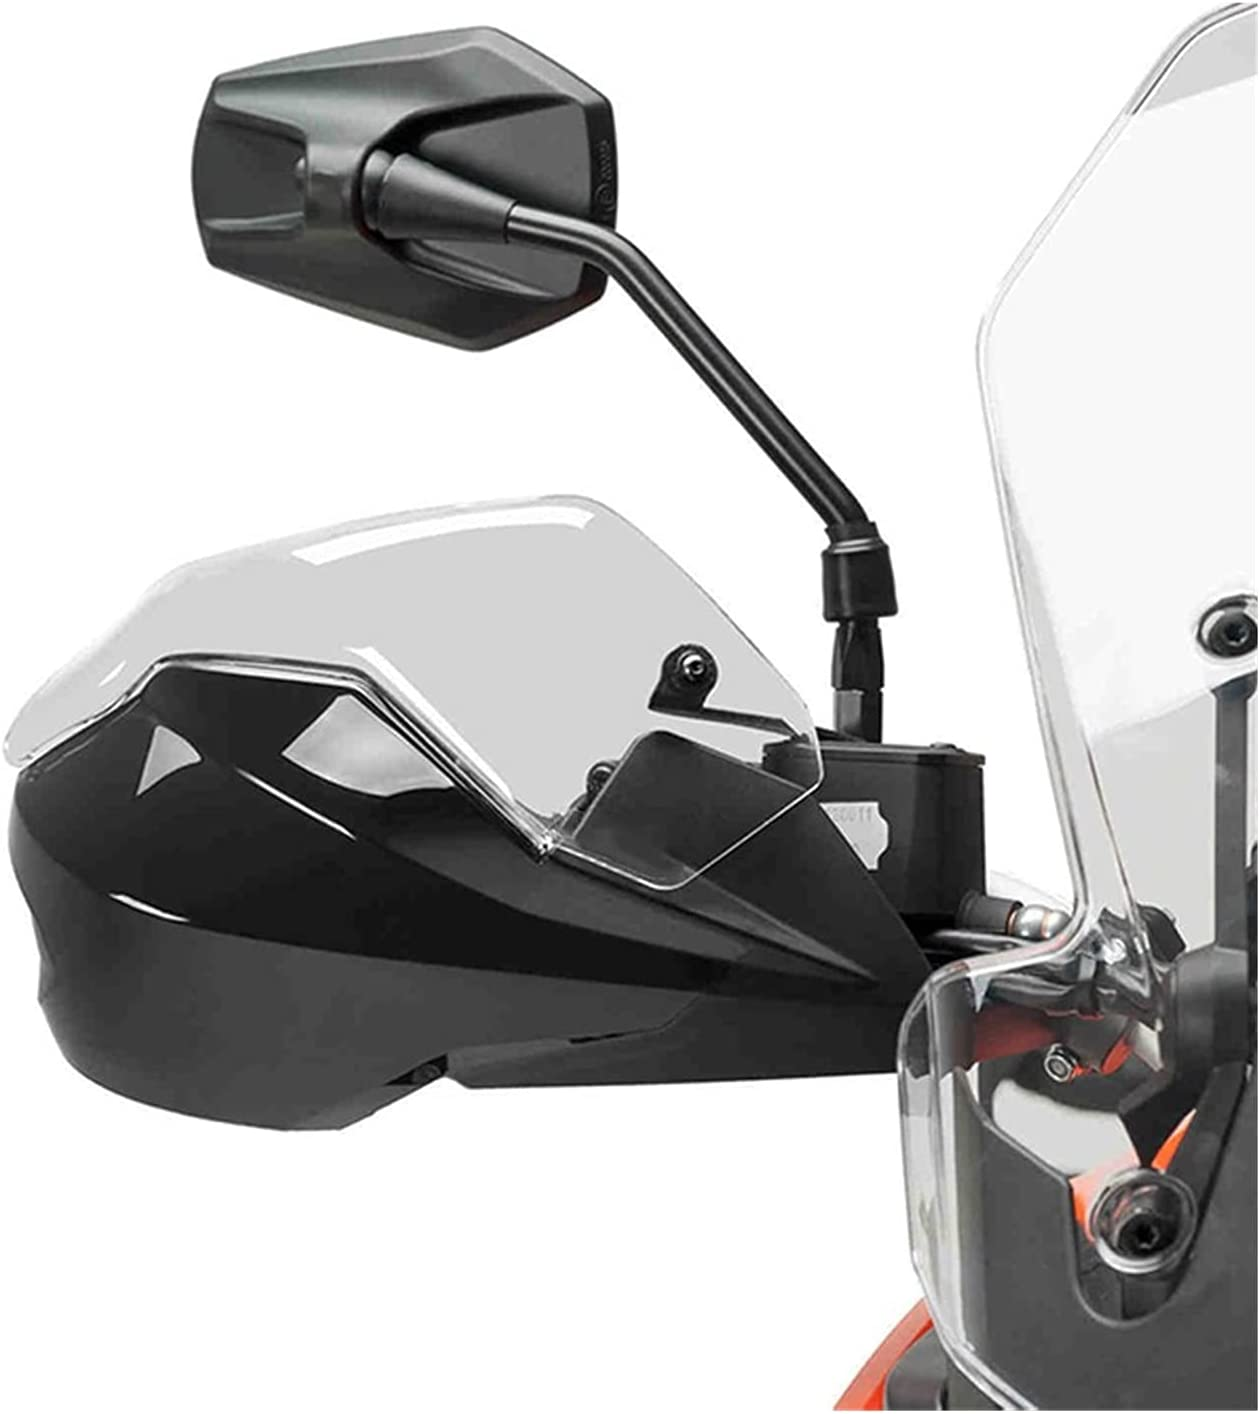 Motorcycle Windscreen Windshield Compatible for S 1090 1290 New York Mall free shipping 1190